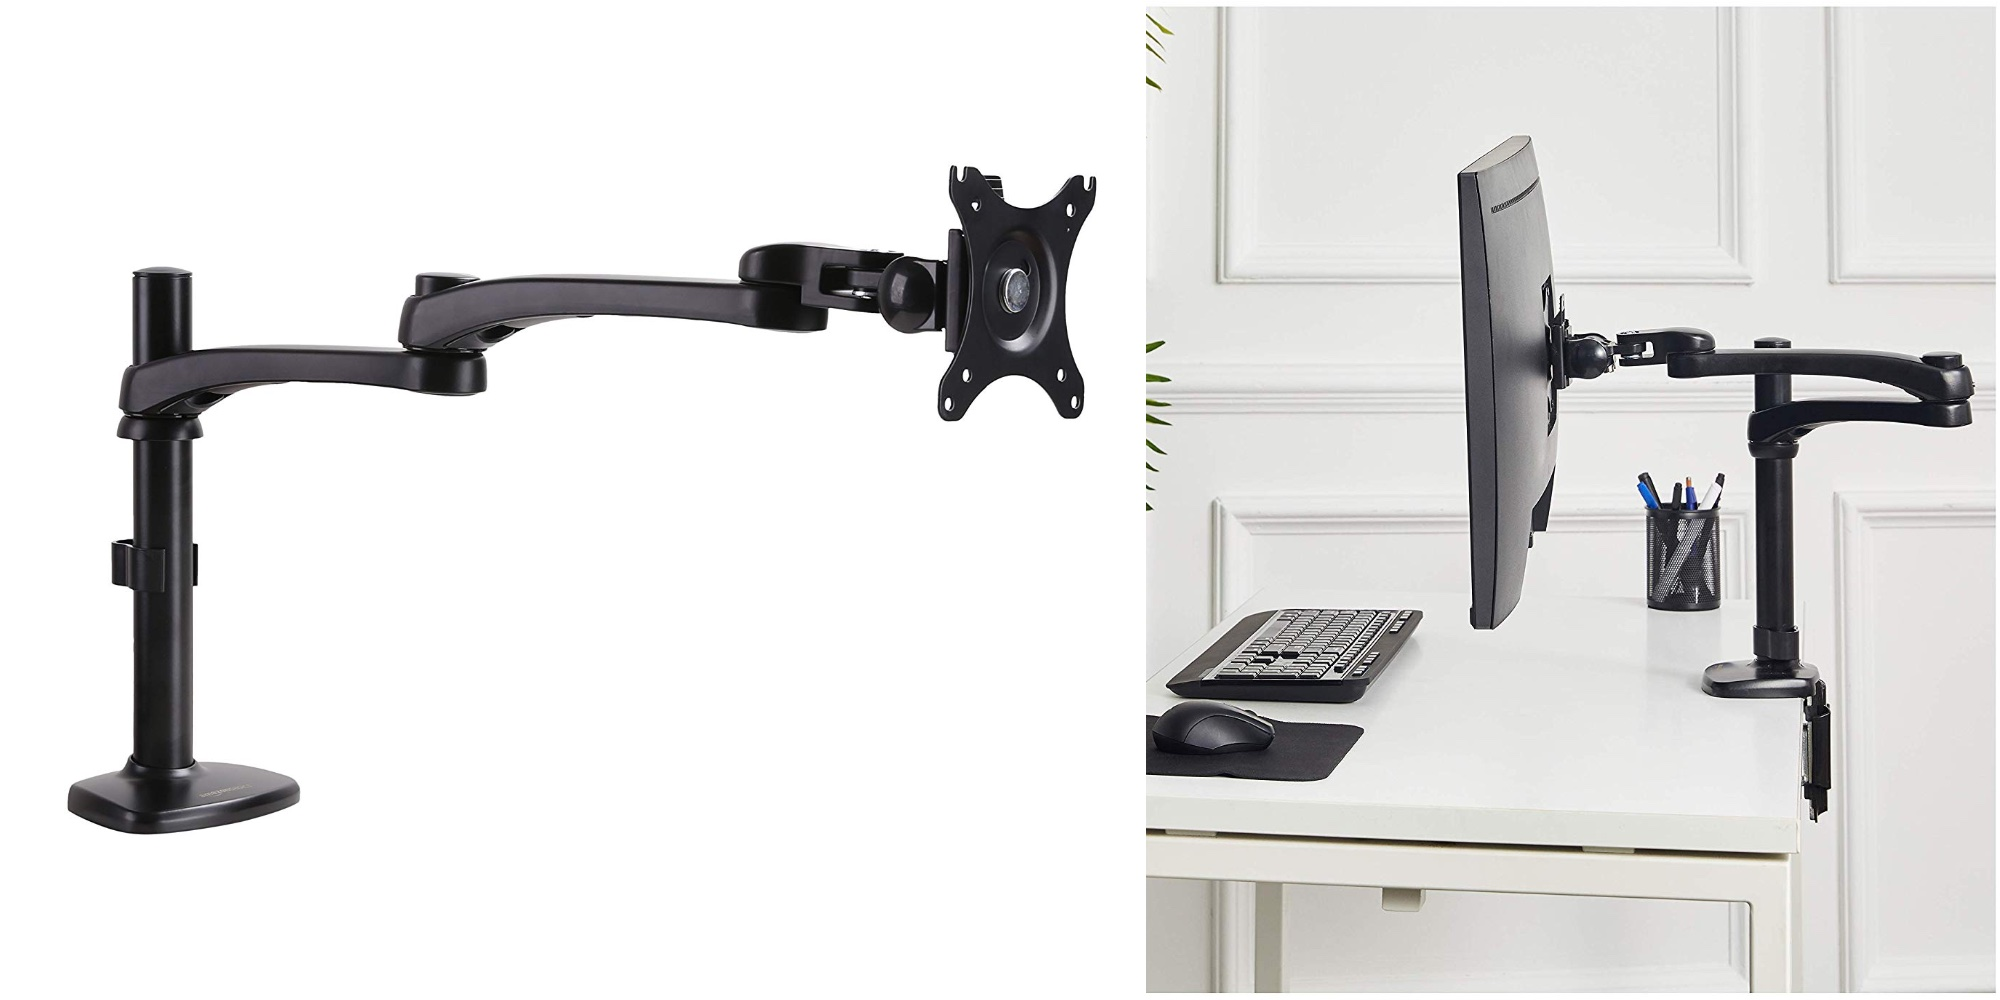 Give your display a boost with the AmazonBasics Monitor Arm at $15.50 (New low, Reg. up to $40)